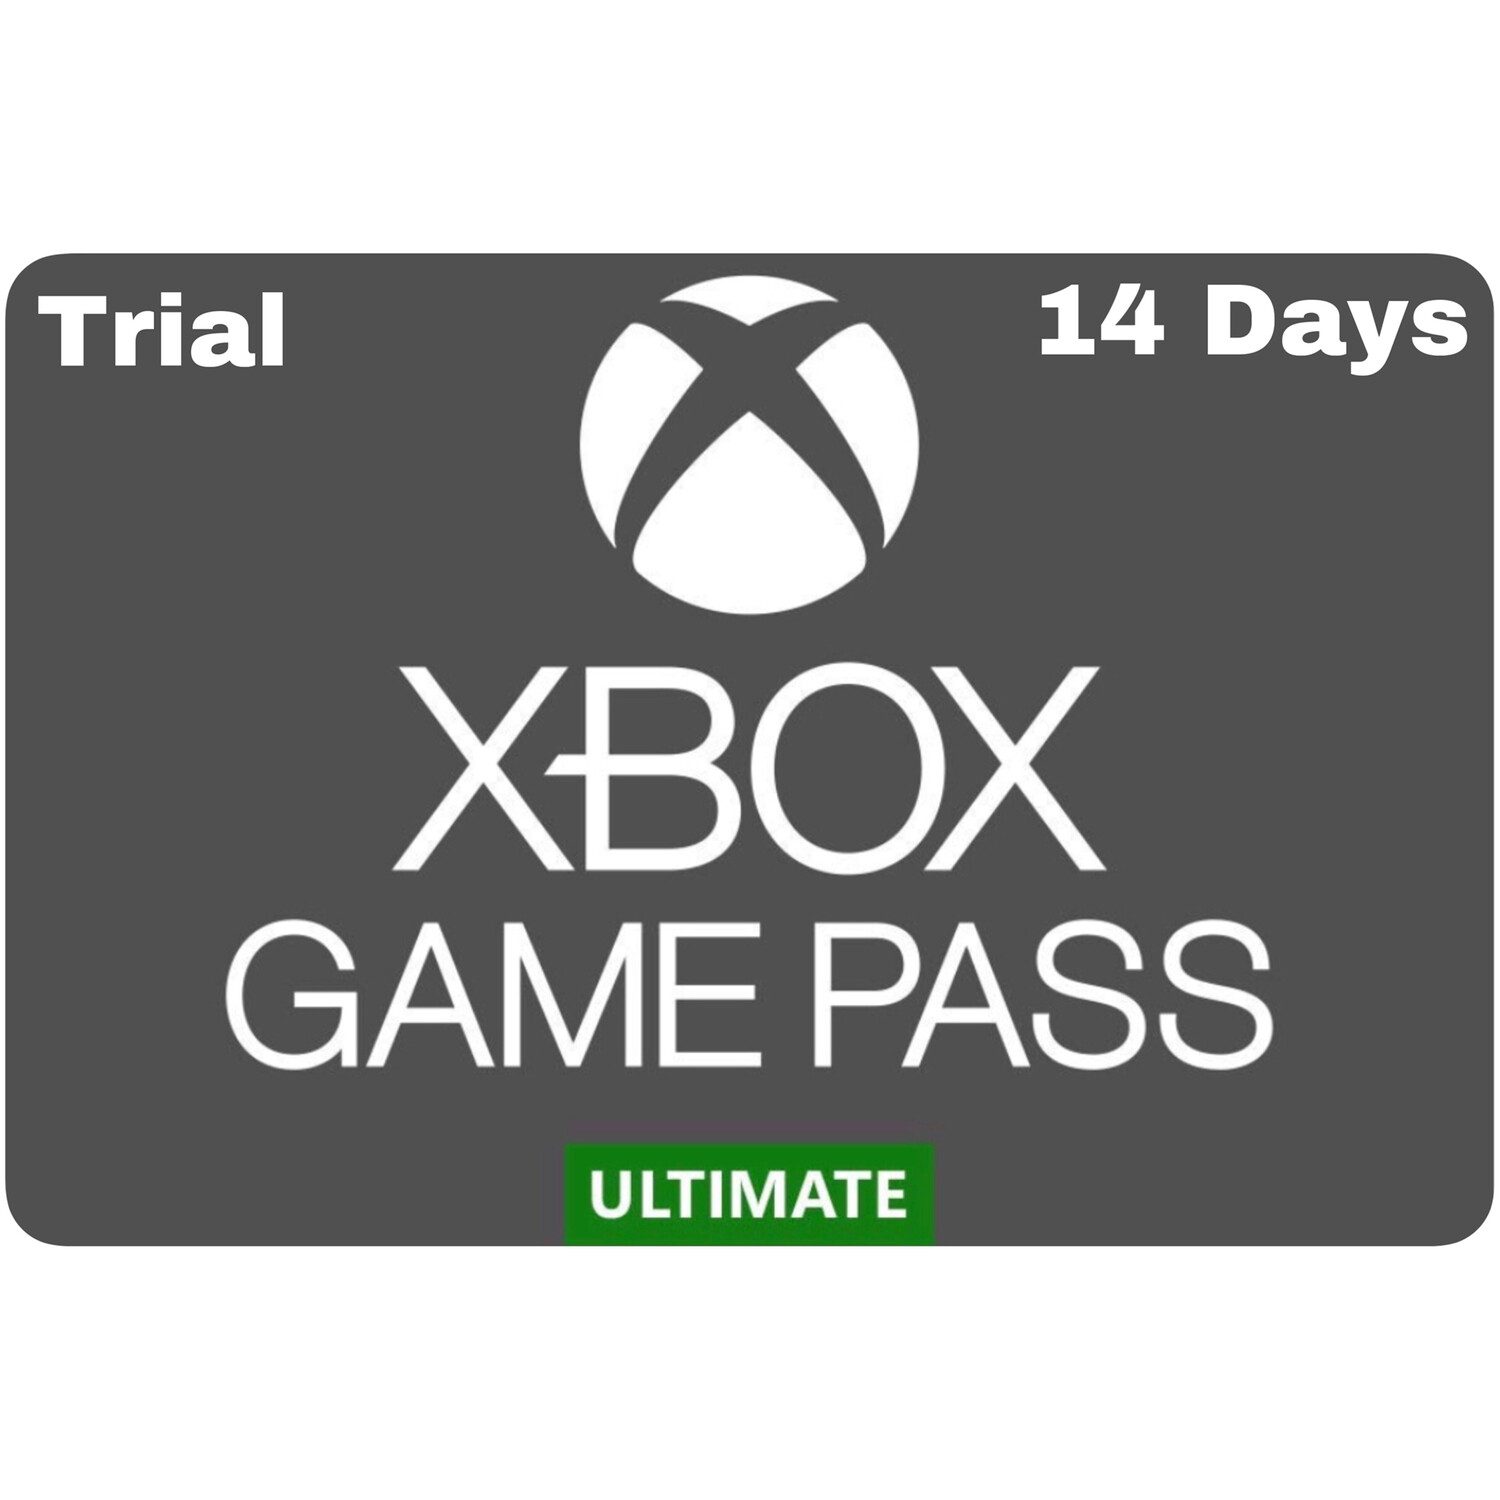 Xbox Game Pass 14 Days Ultimate Trial Global